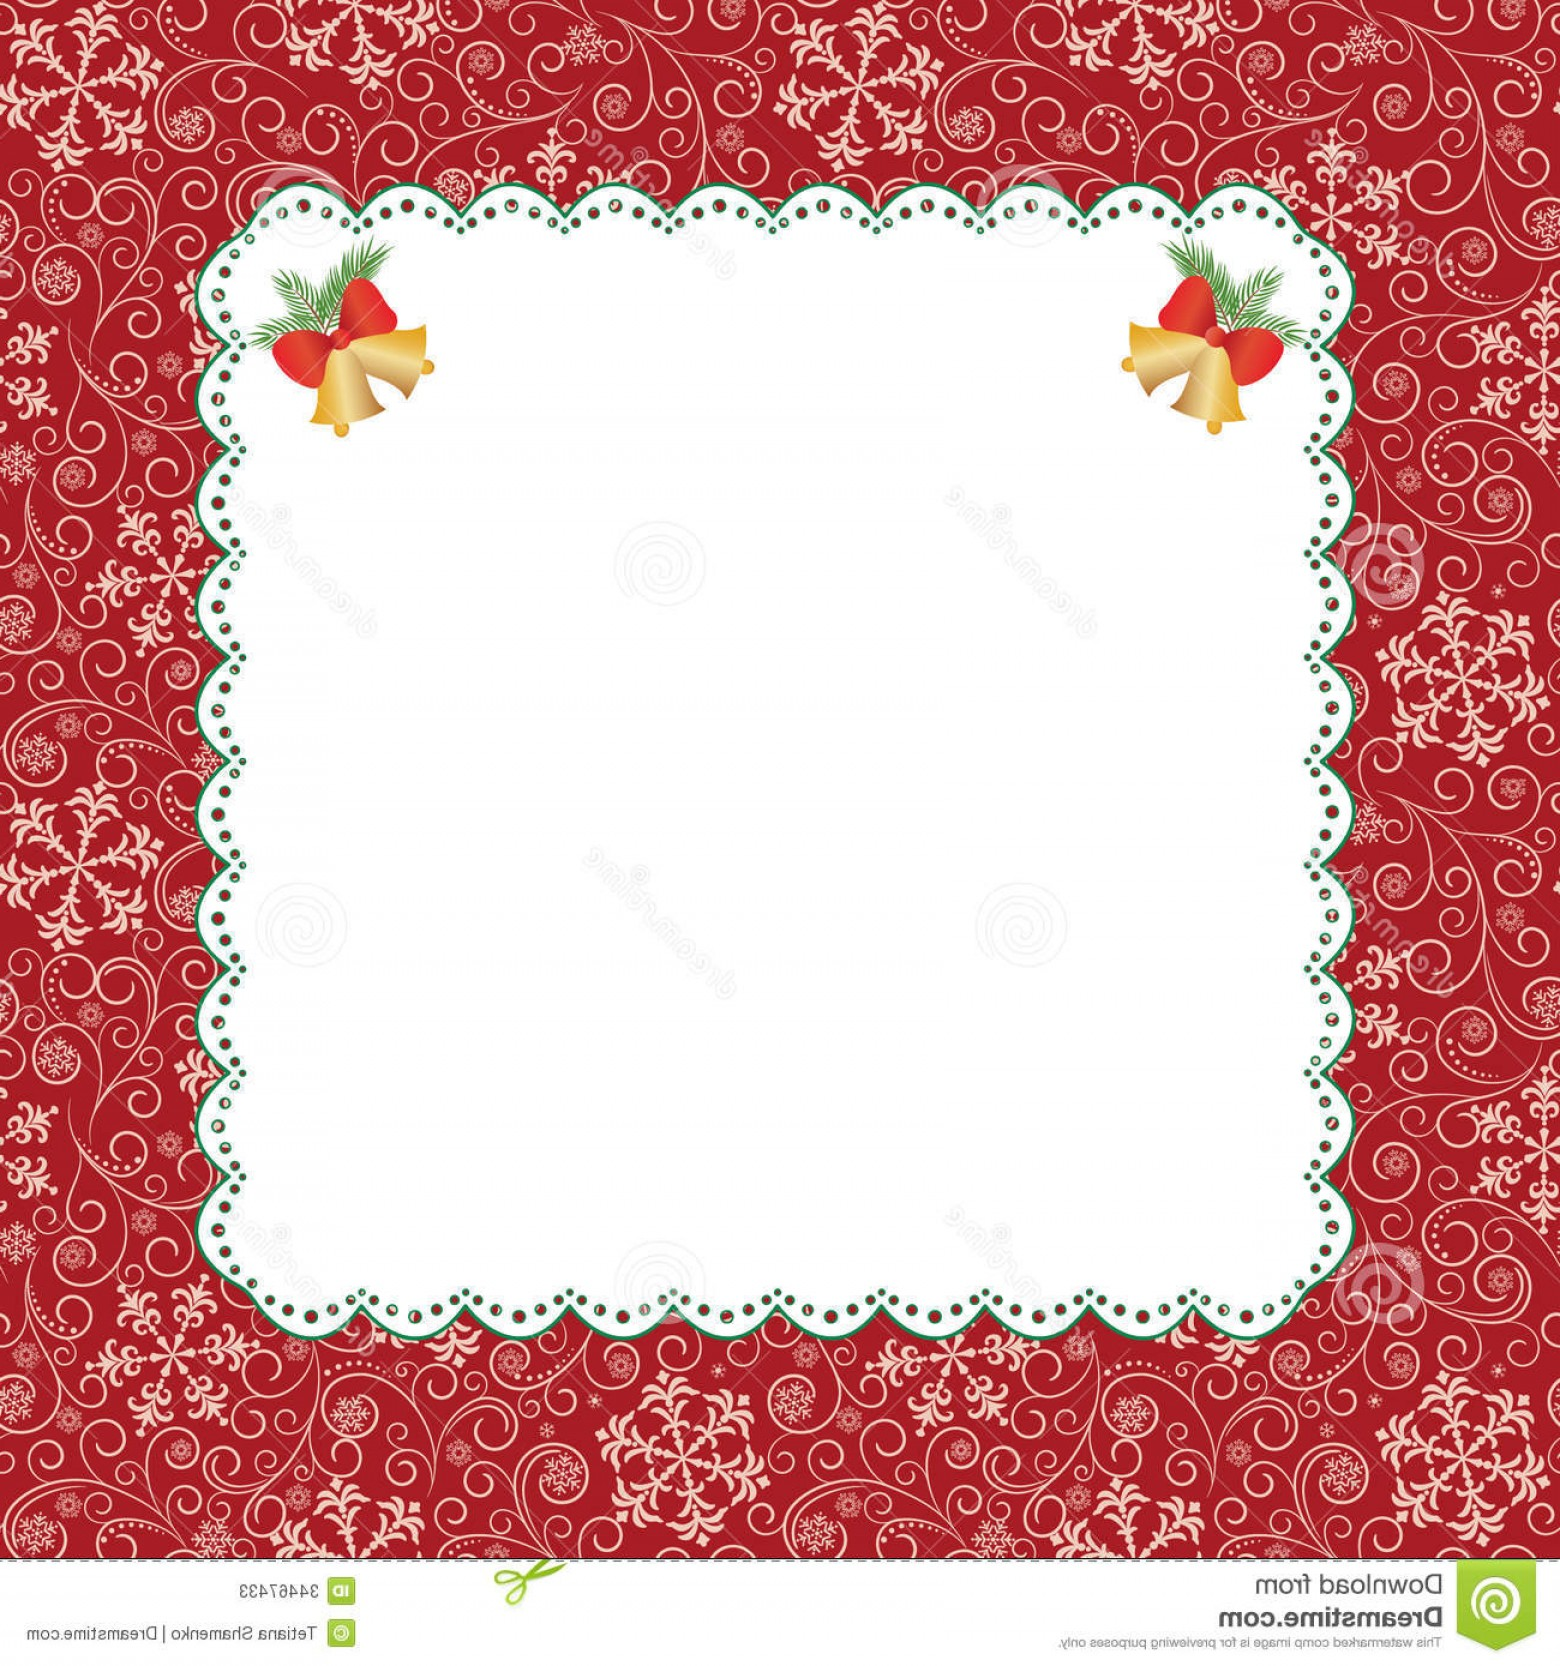 Birthday Card Vector Frame Designs: Stock Photos Template Frame Design Greeting Card Christmas Image